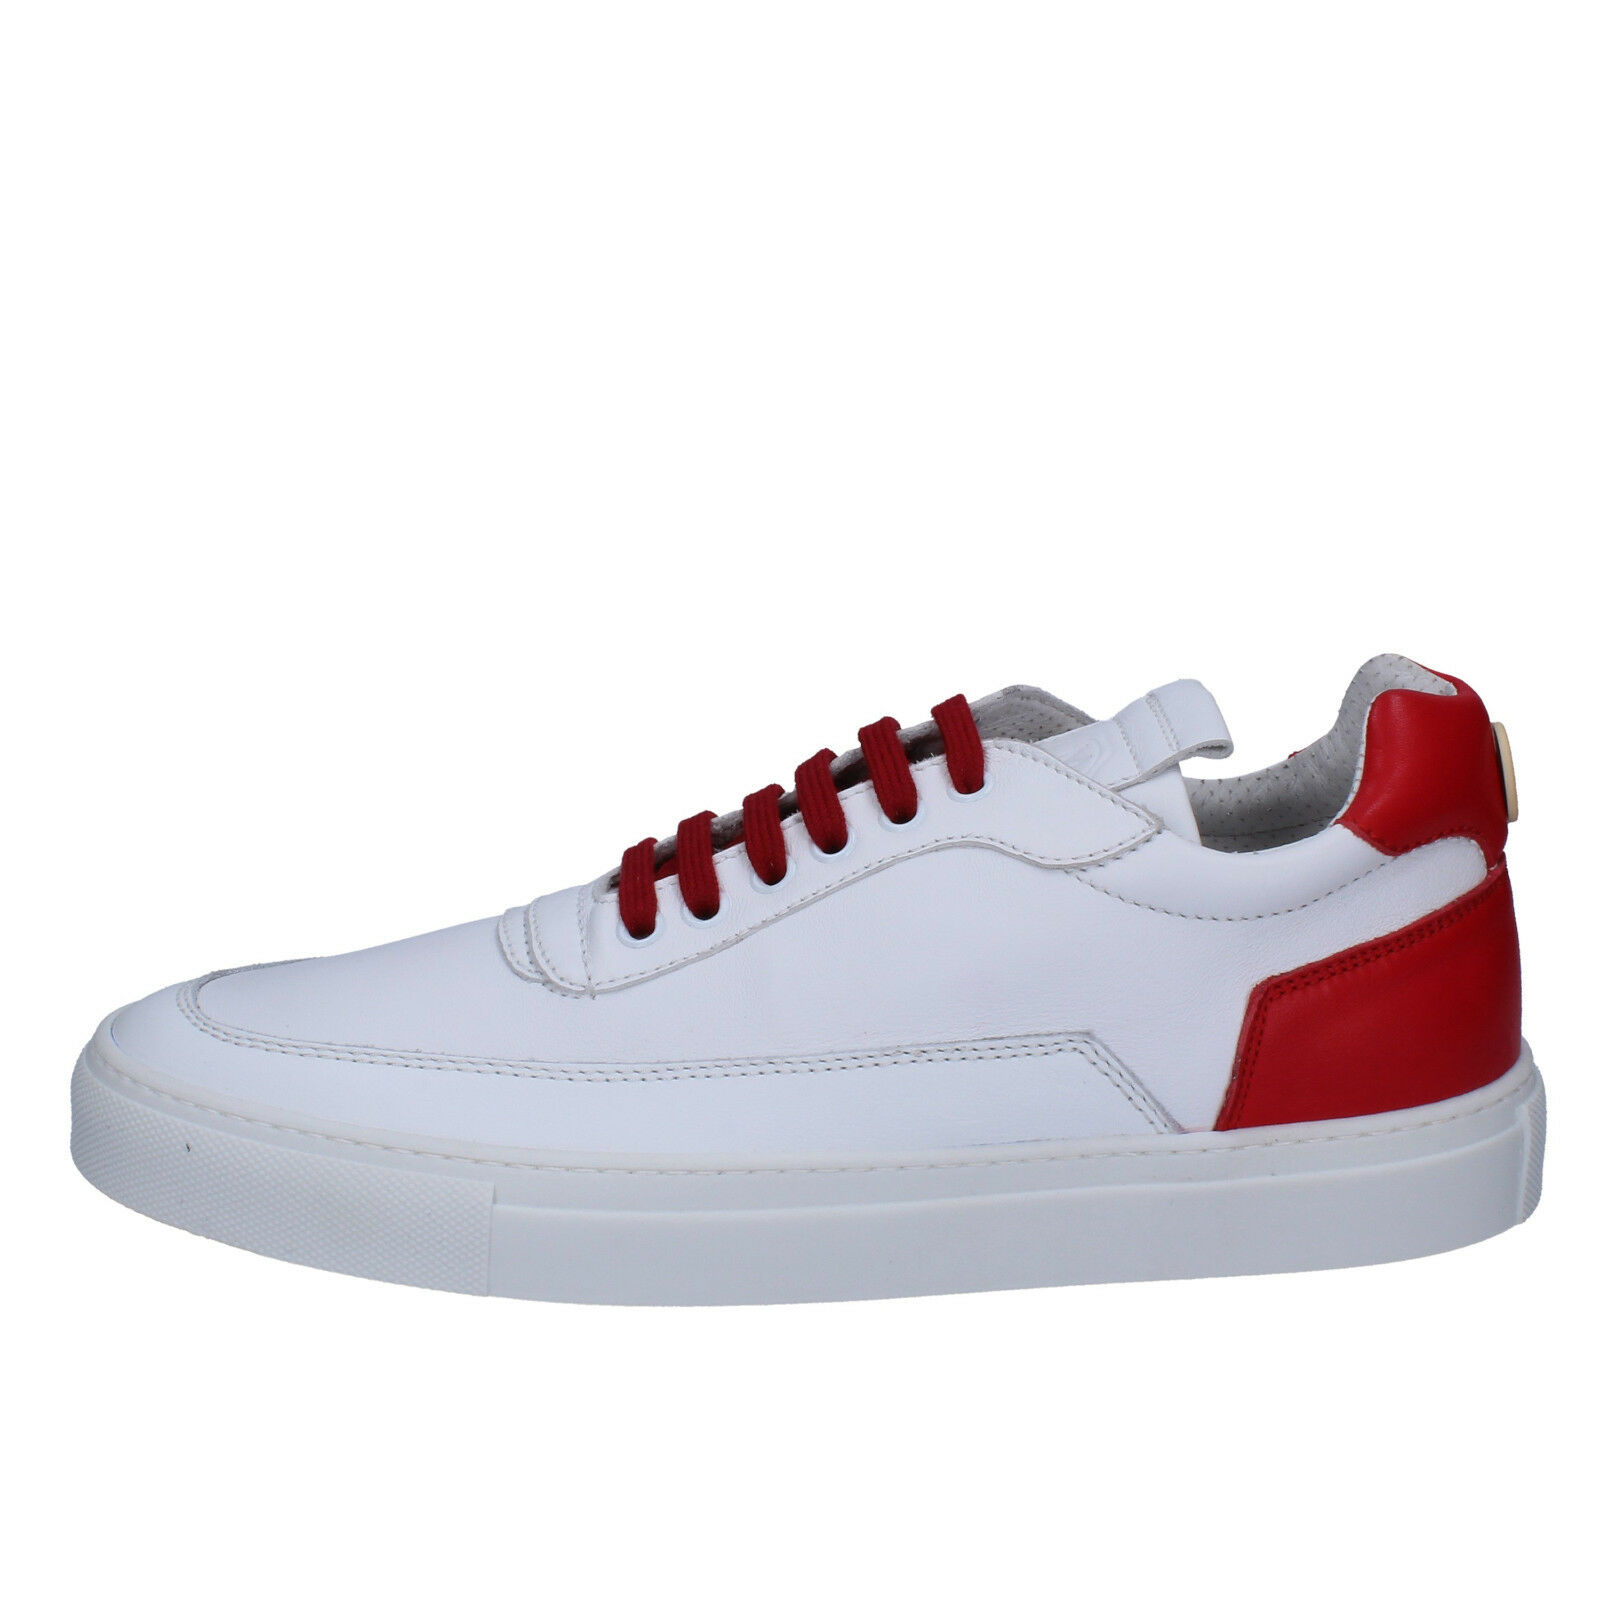 men's shoes MARIANO DI VAIO 10 () sneakers white red leather AB772-E